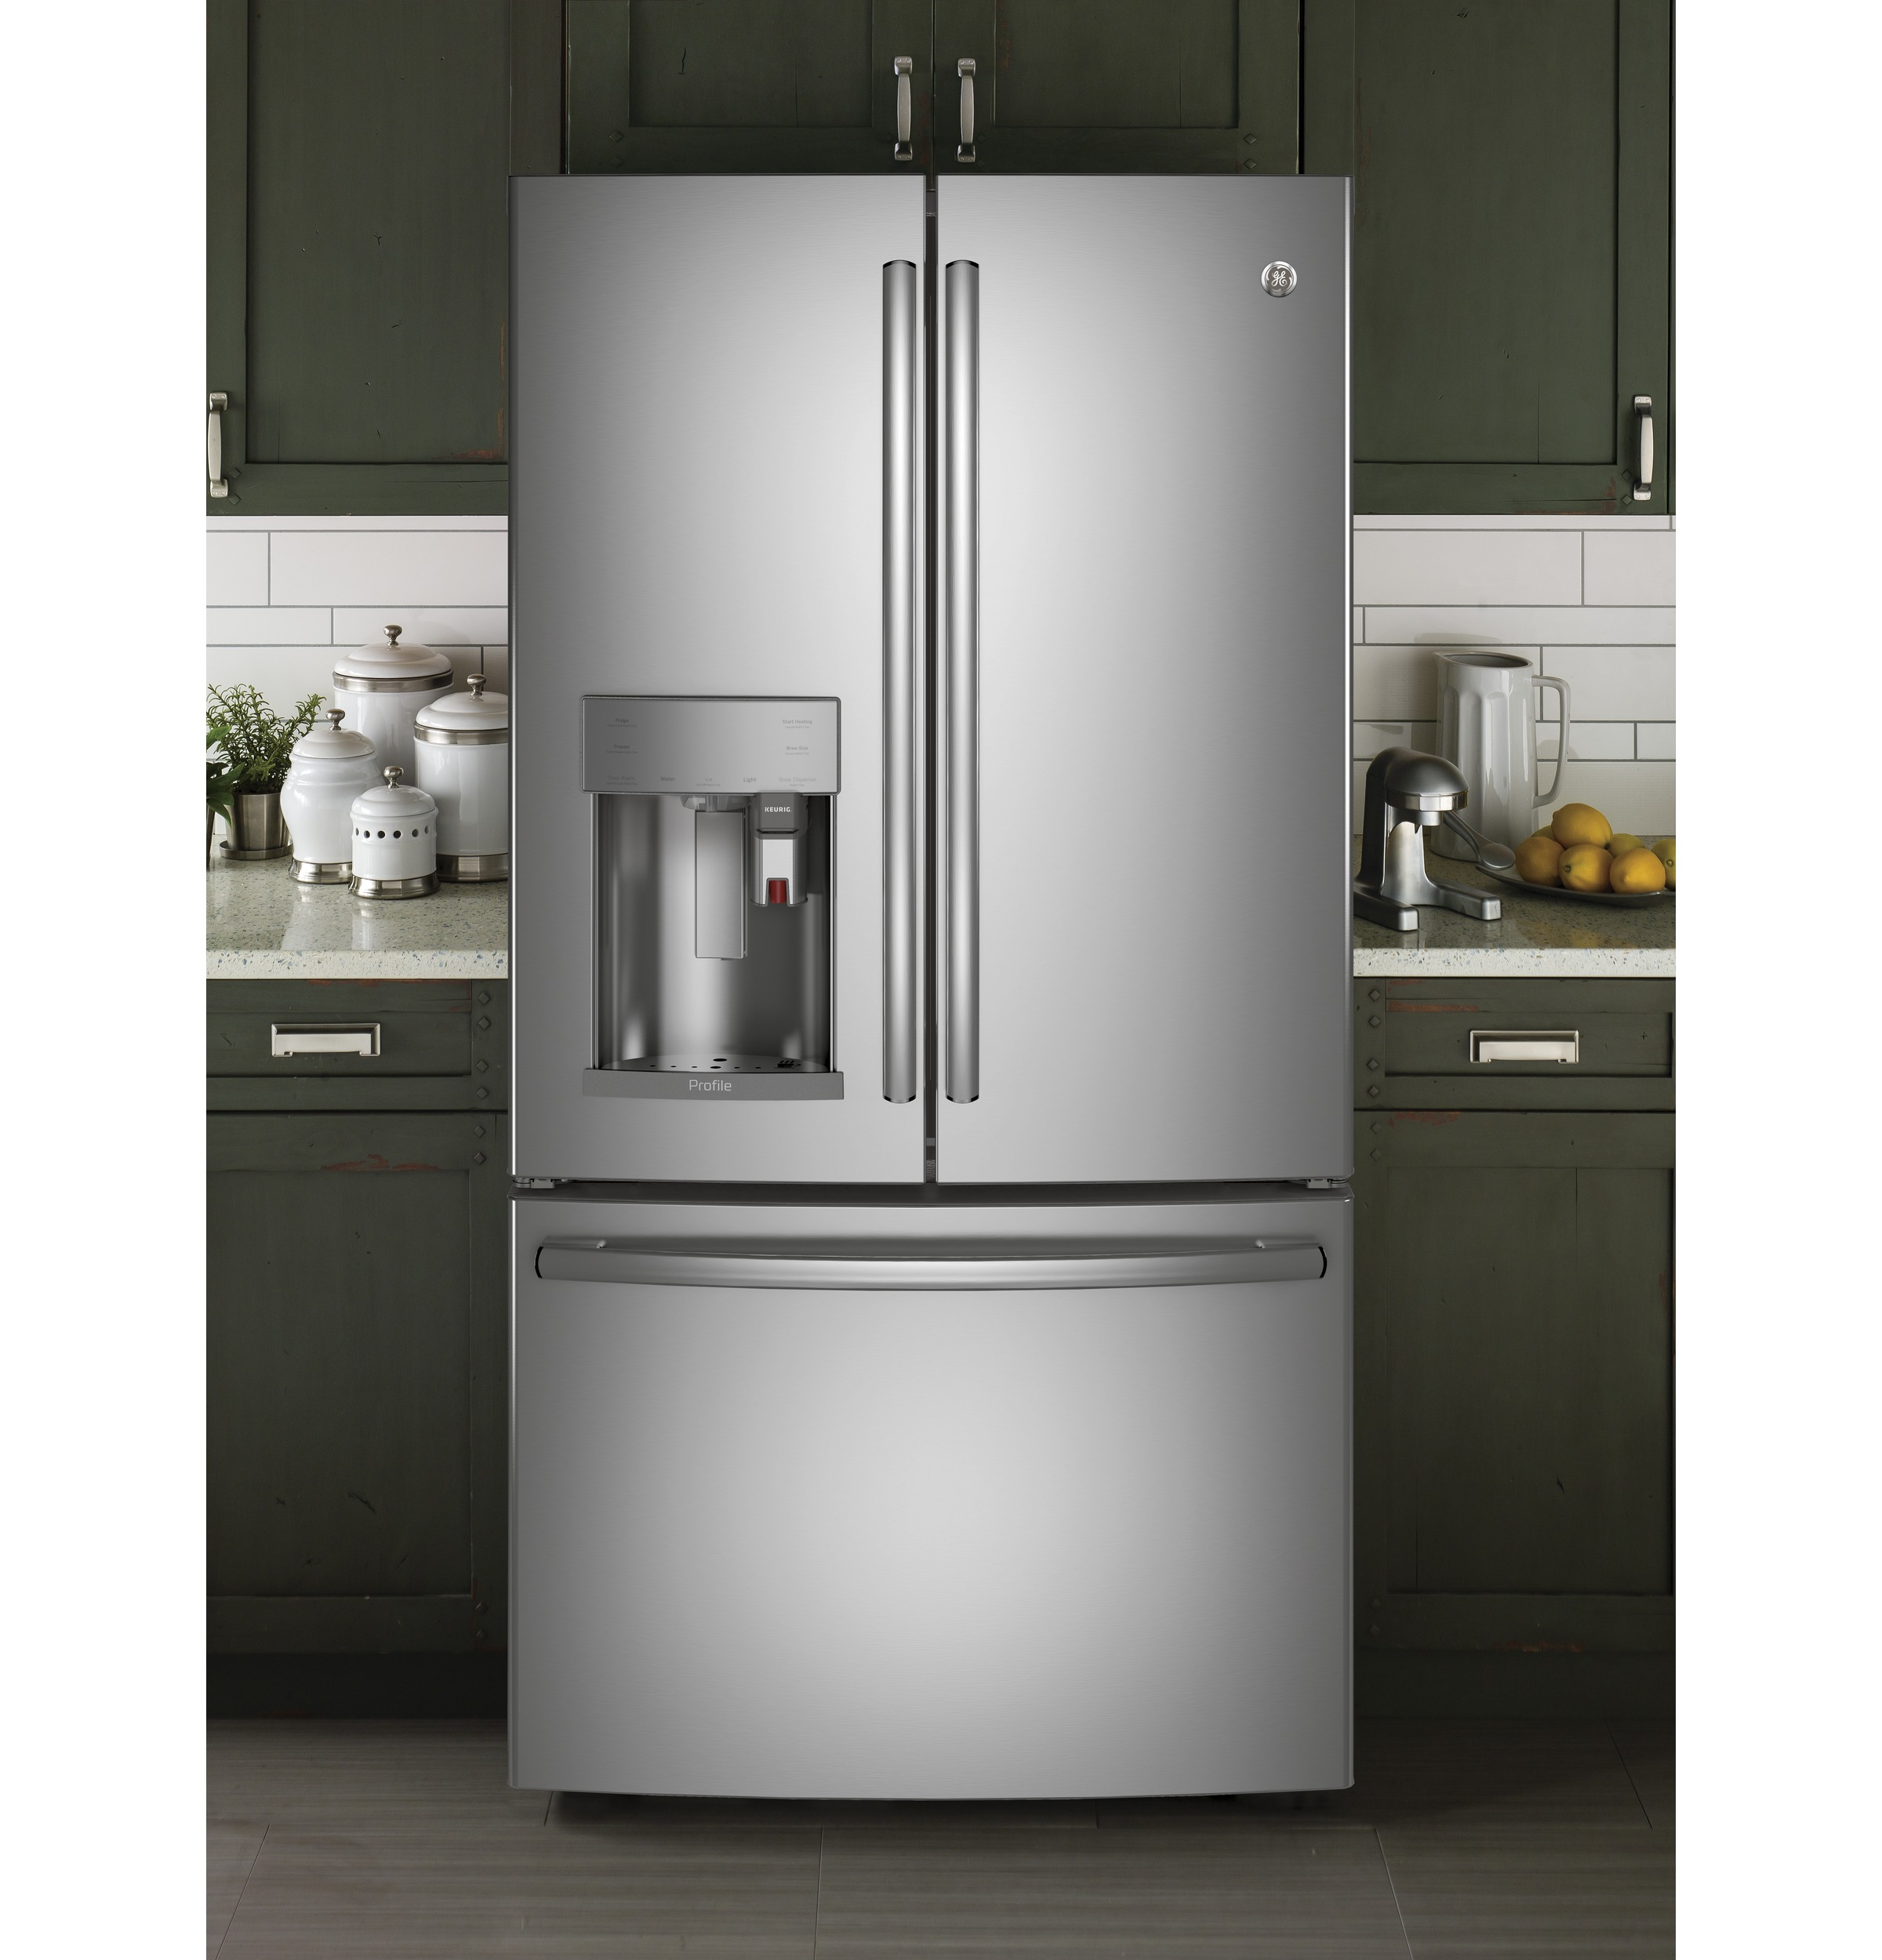 GE Profile™ Series ENERGY STAR® 27.8 Cu. Ft. French-Door Refrigerator